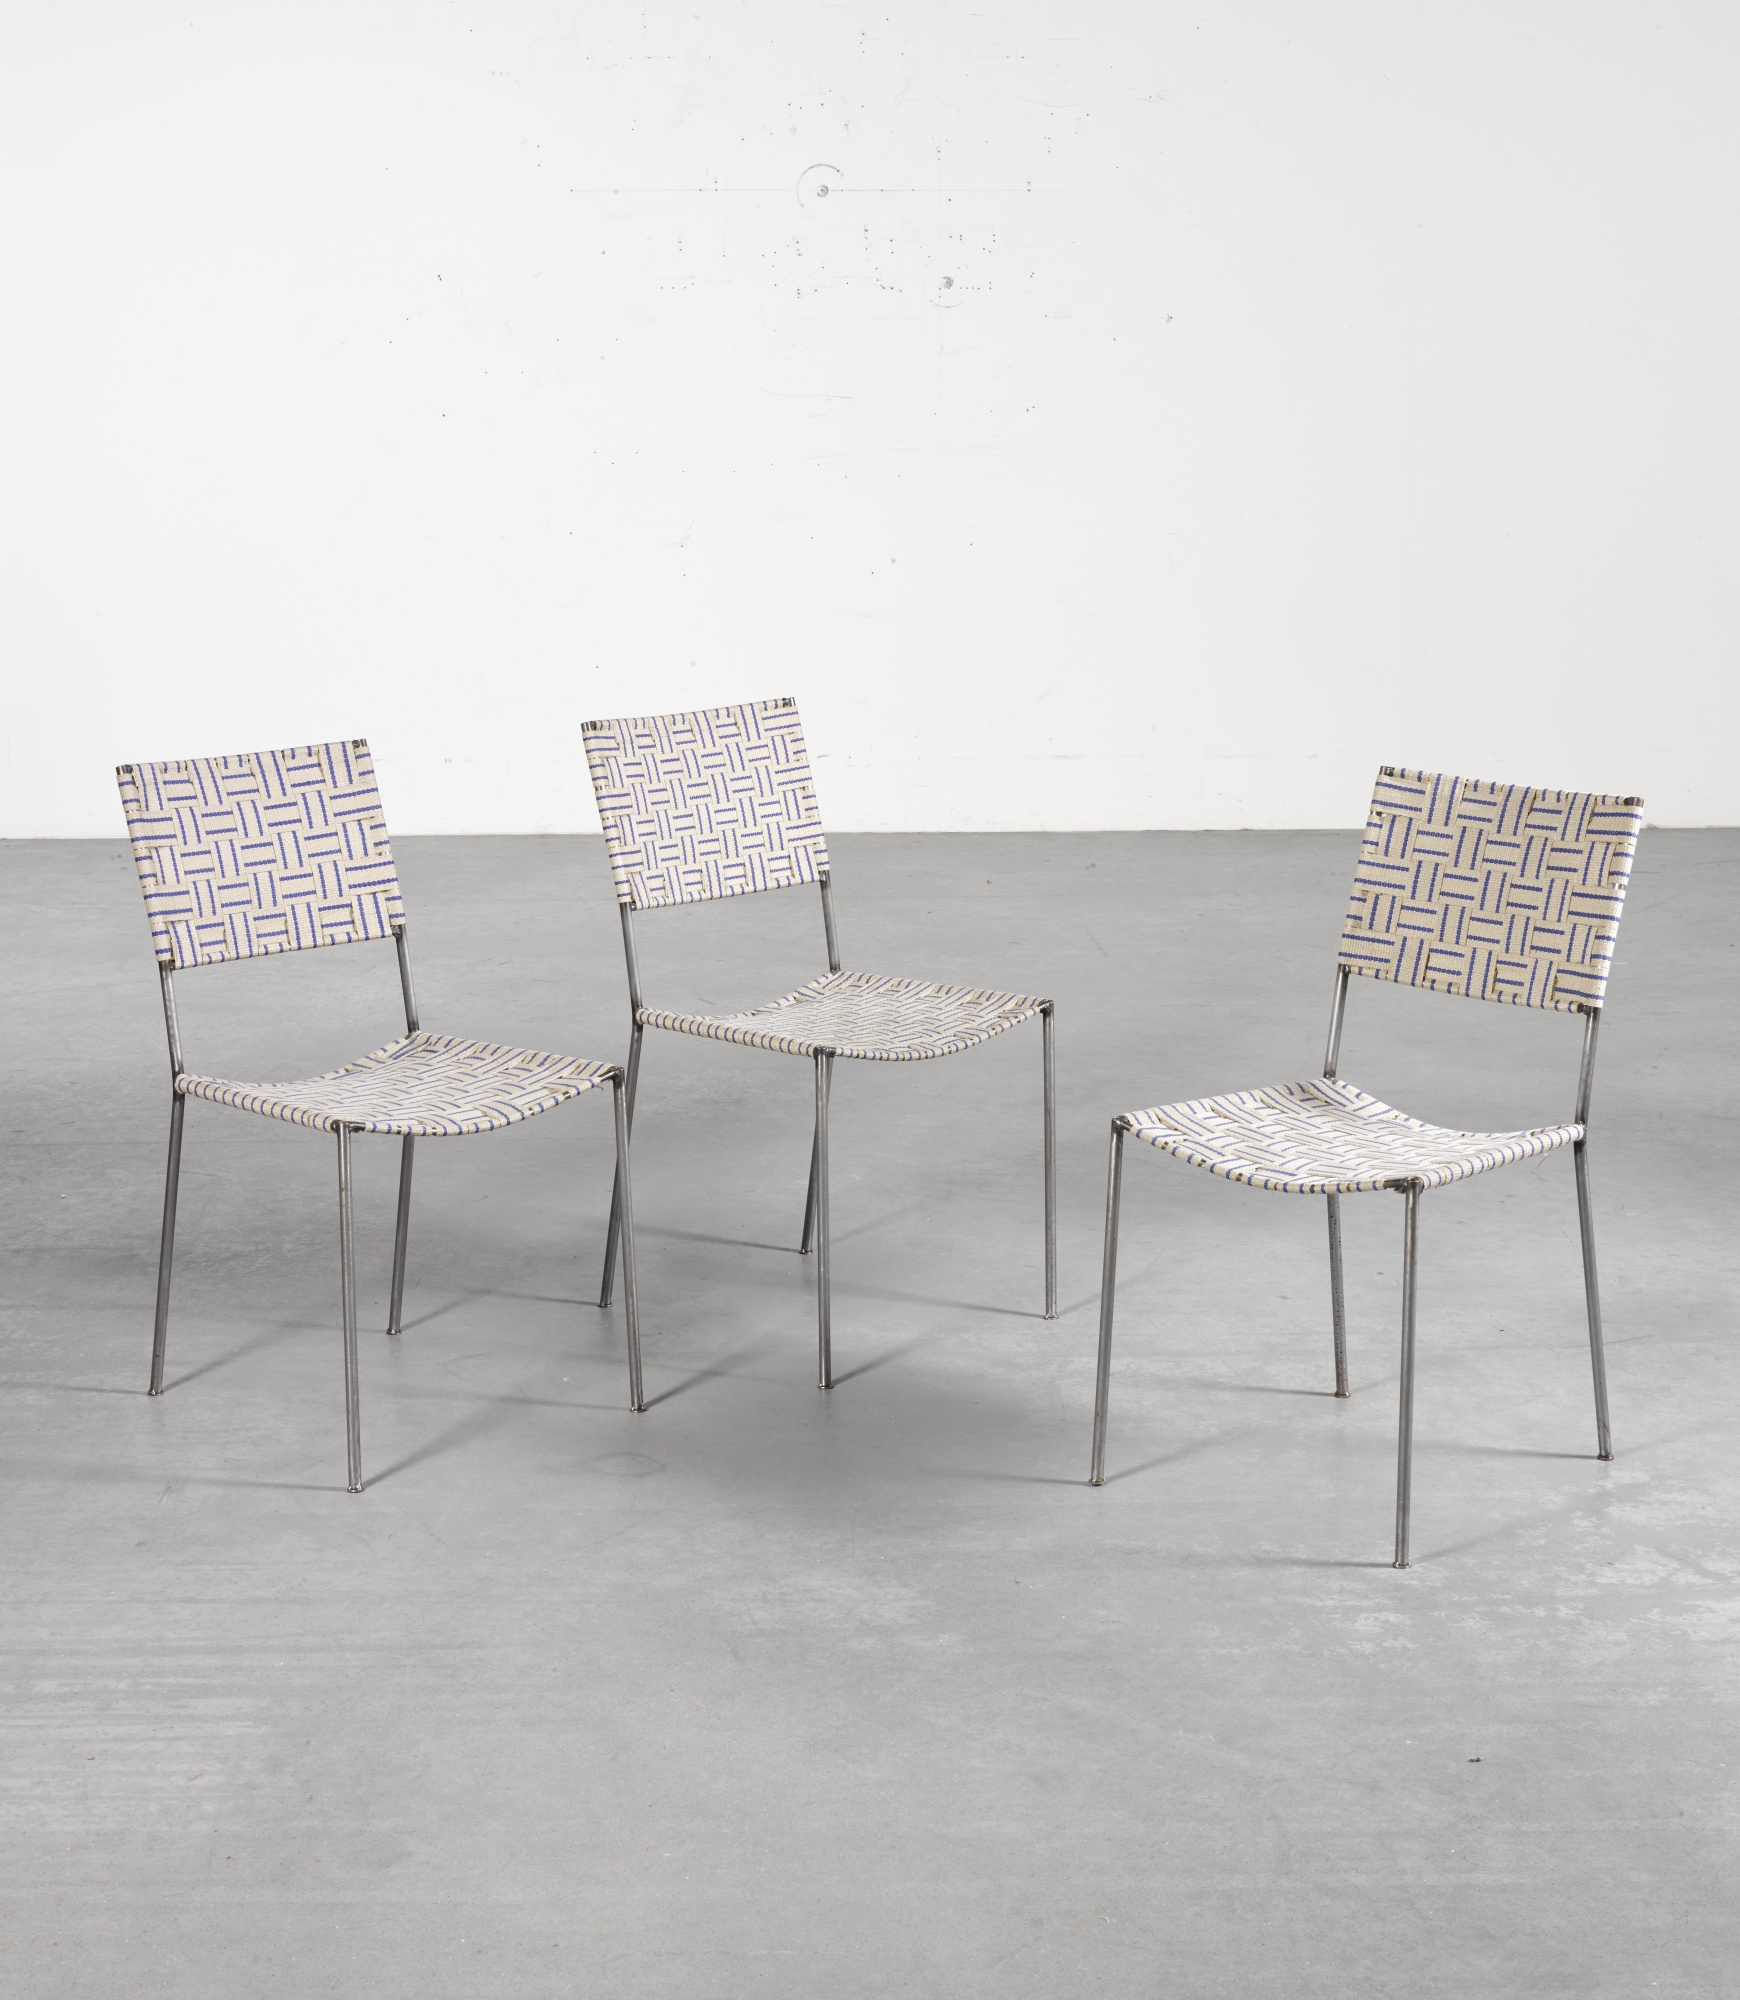 Franz West-Onkelstuhle (Uncle Chairs)-2007